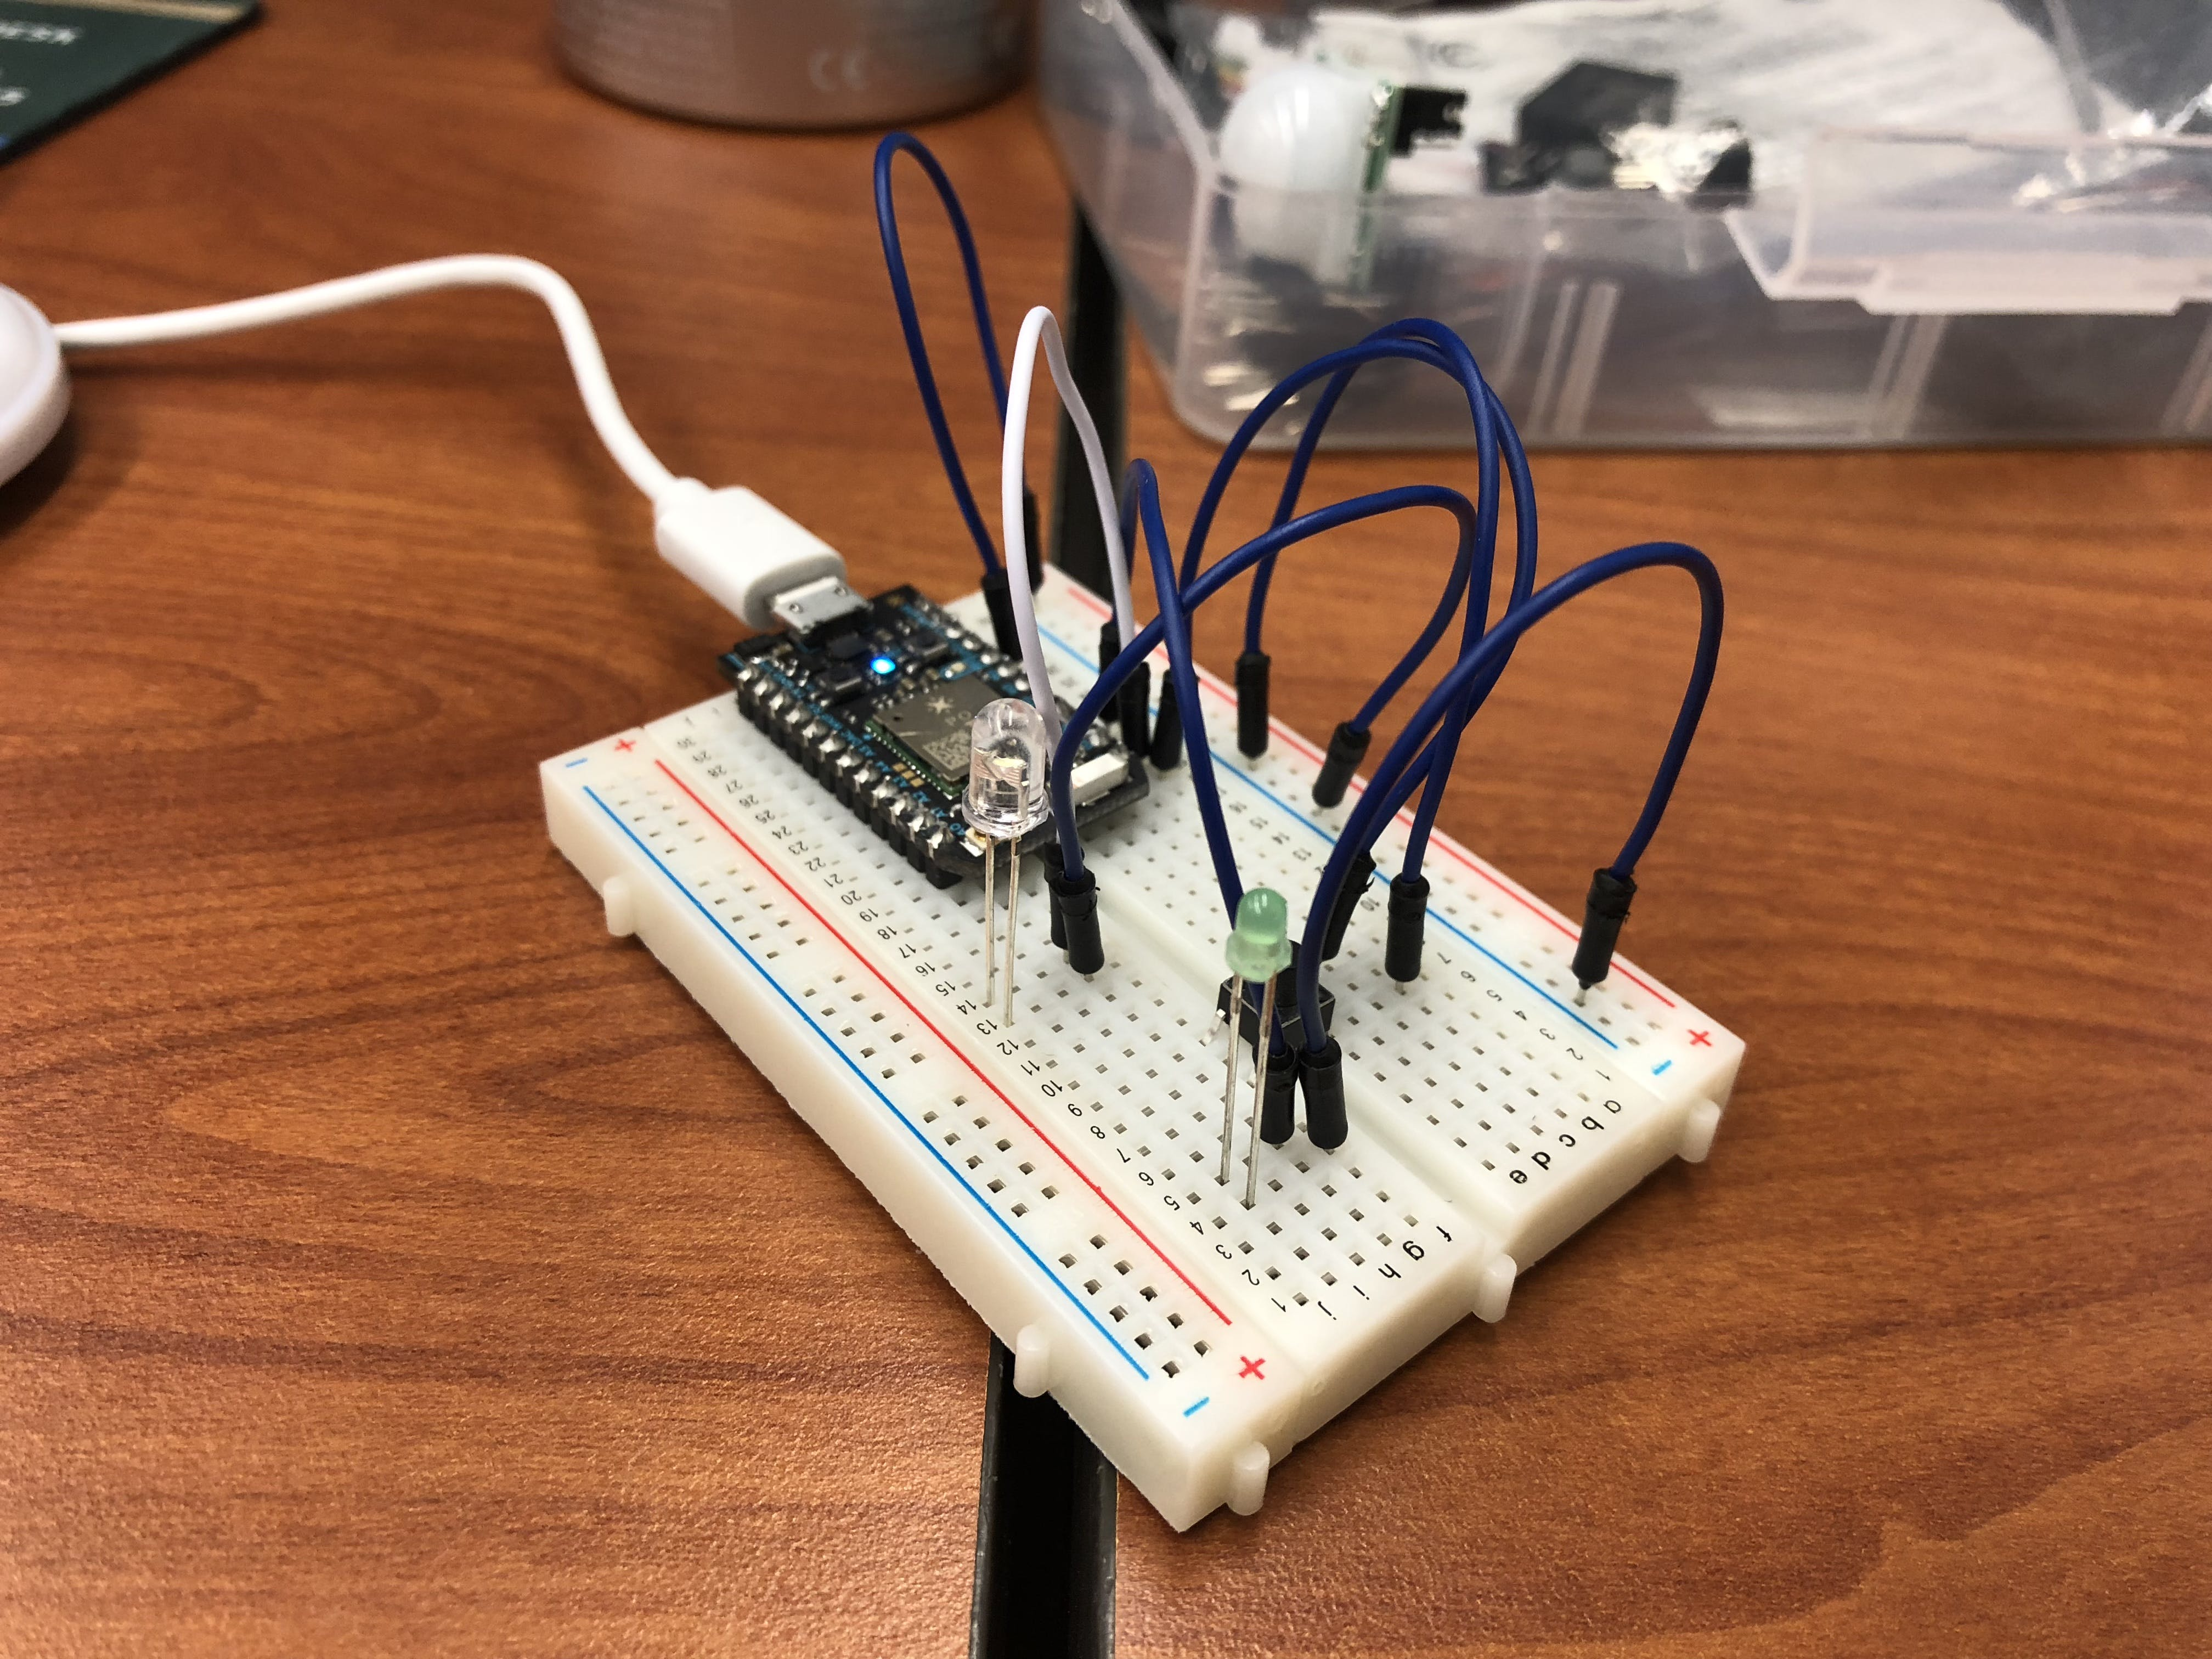 Photon 1: LED onboard